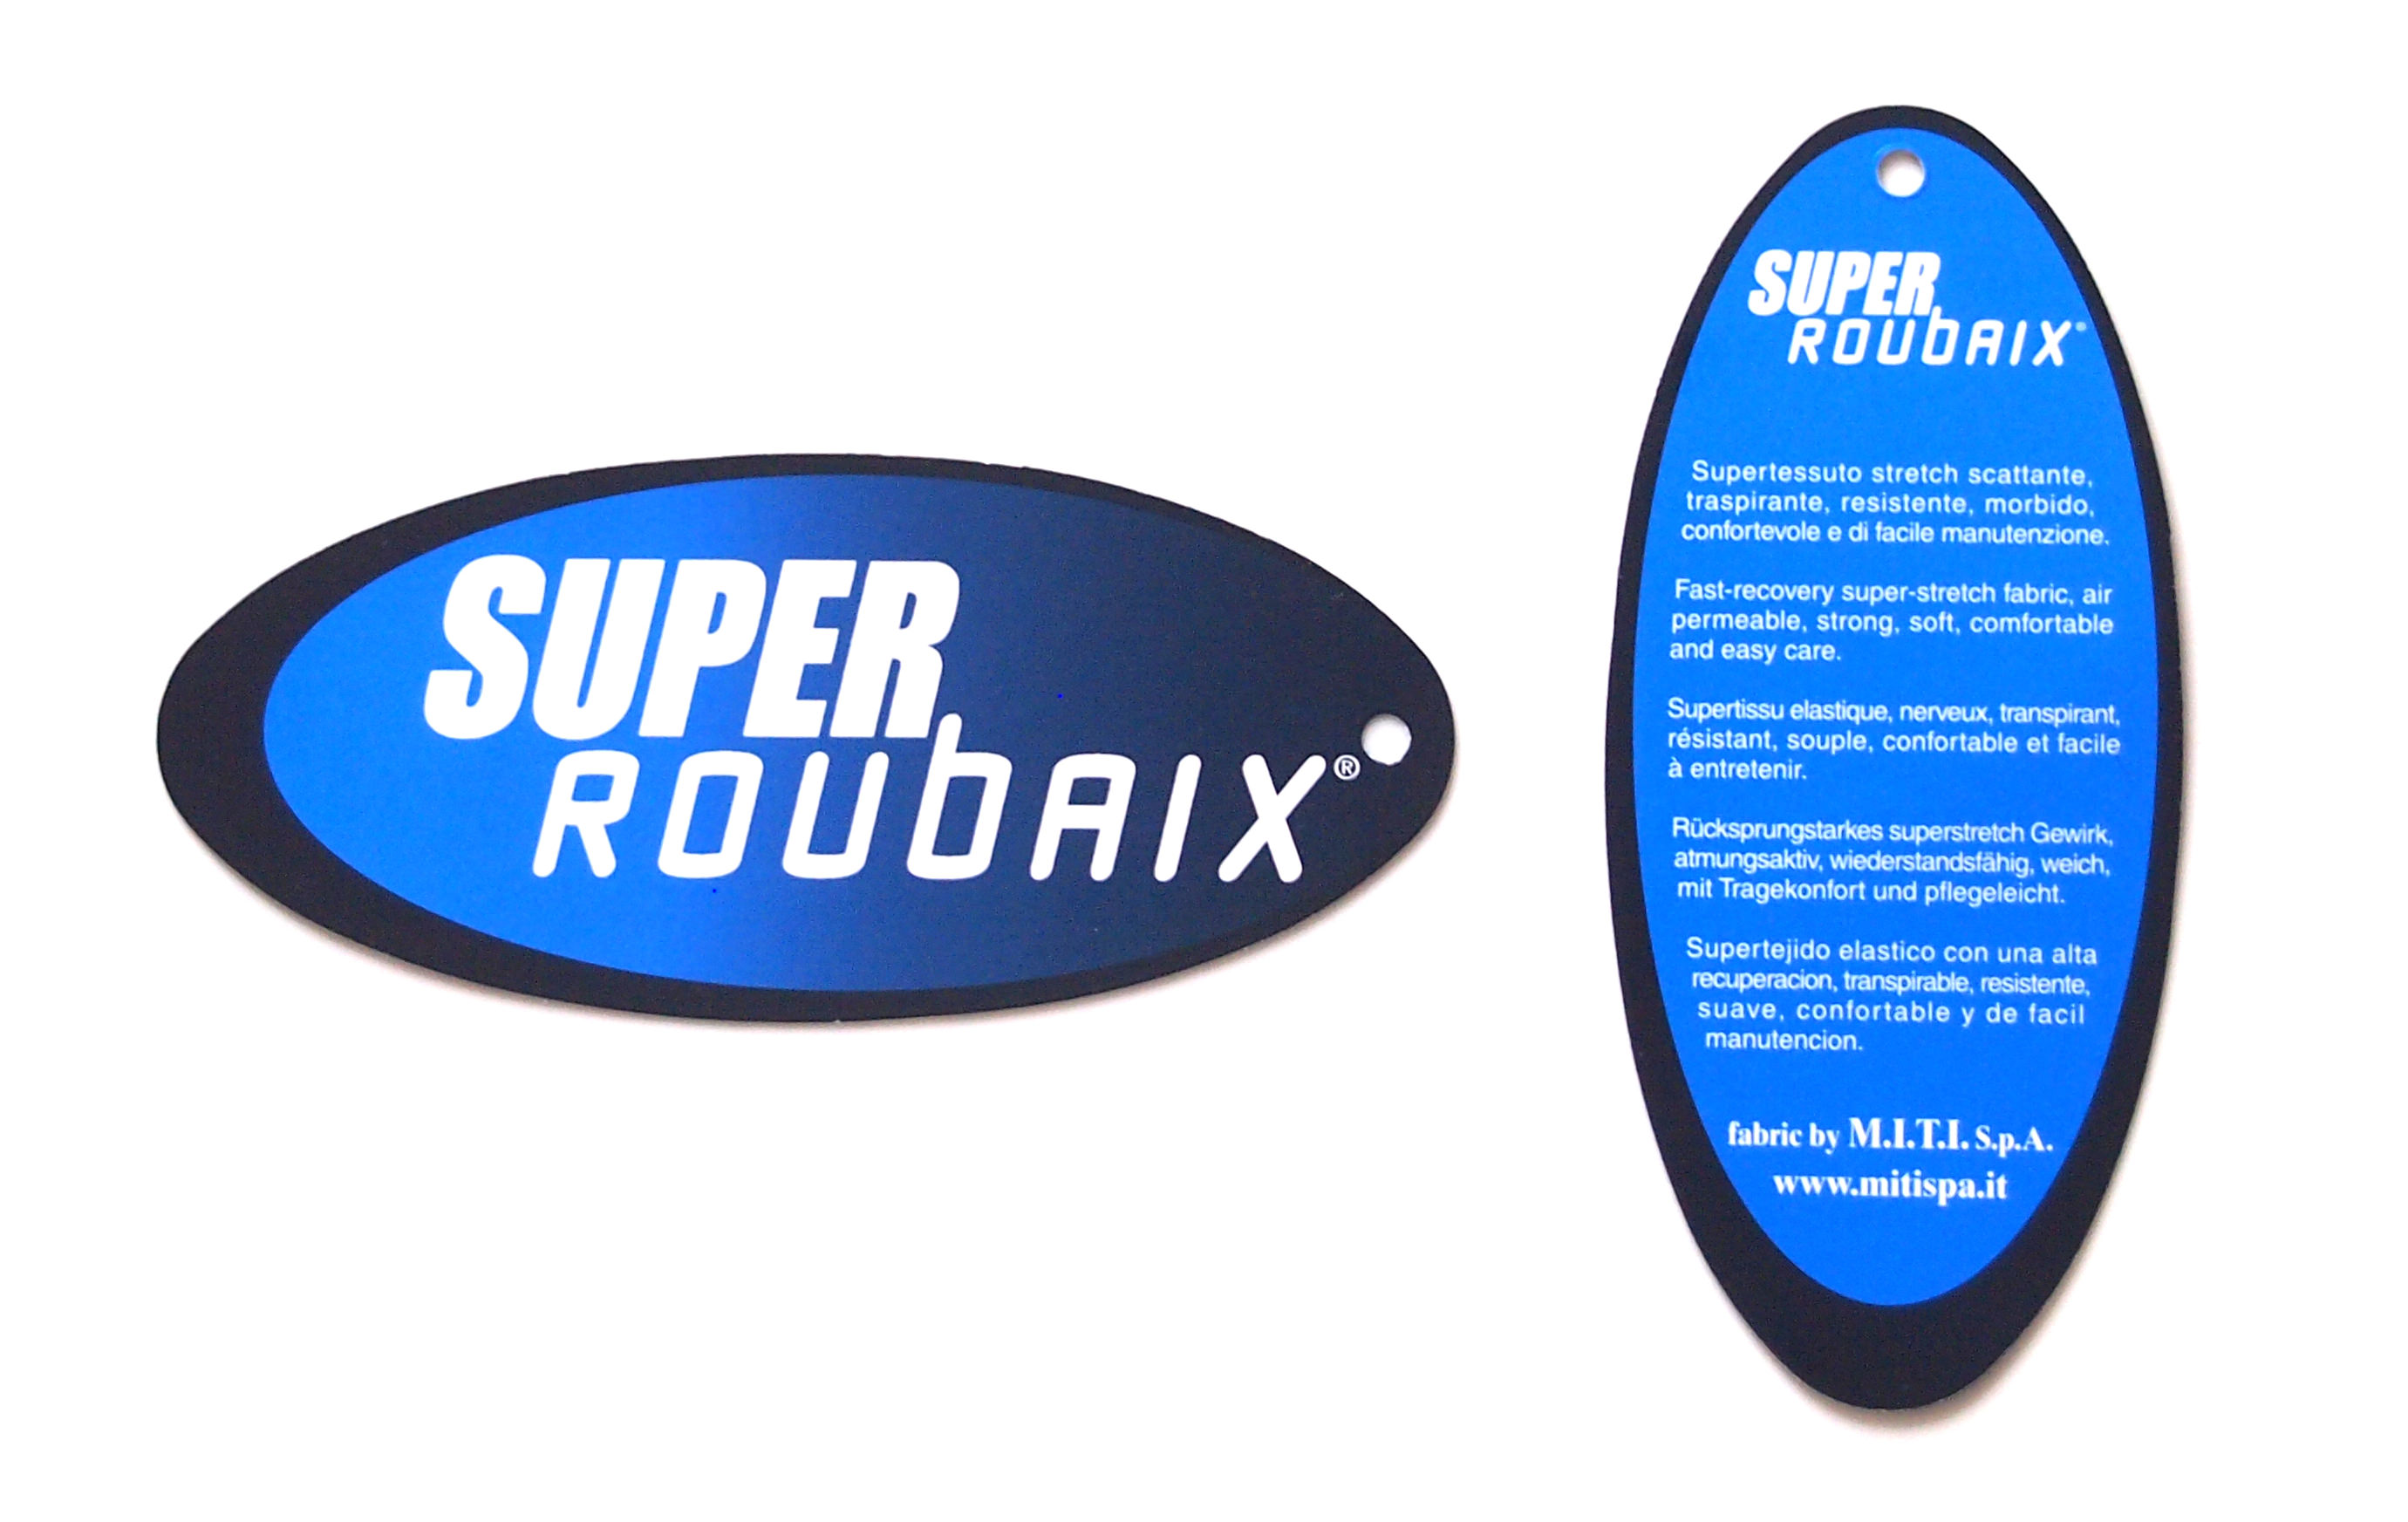 Super Roubaix